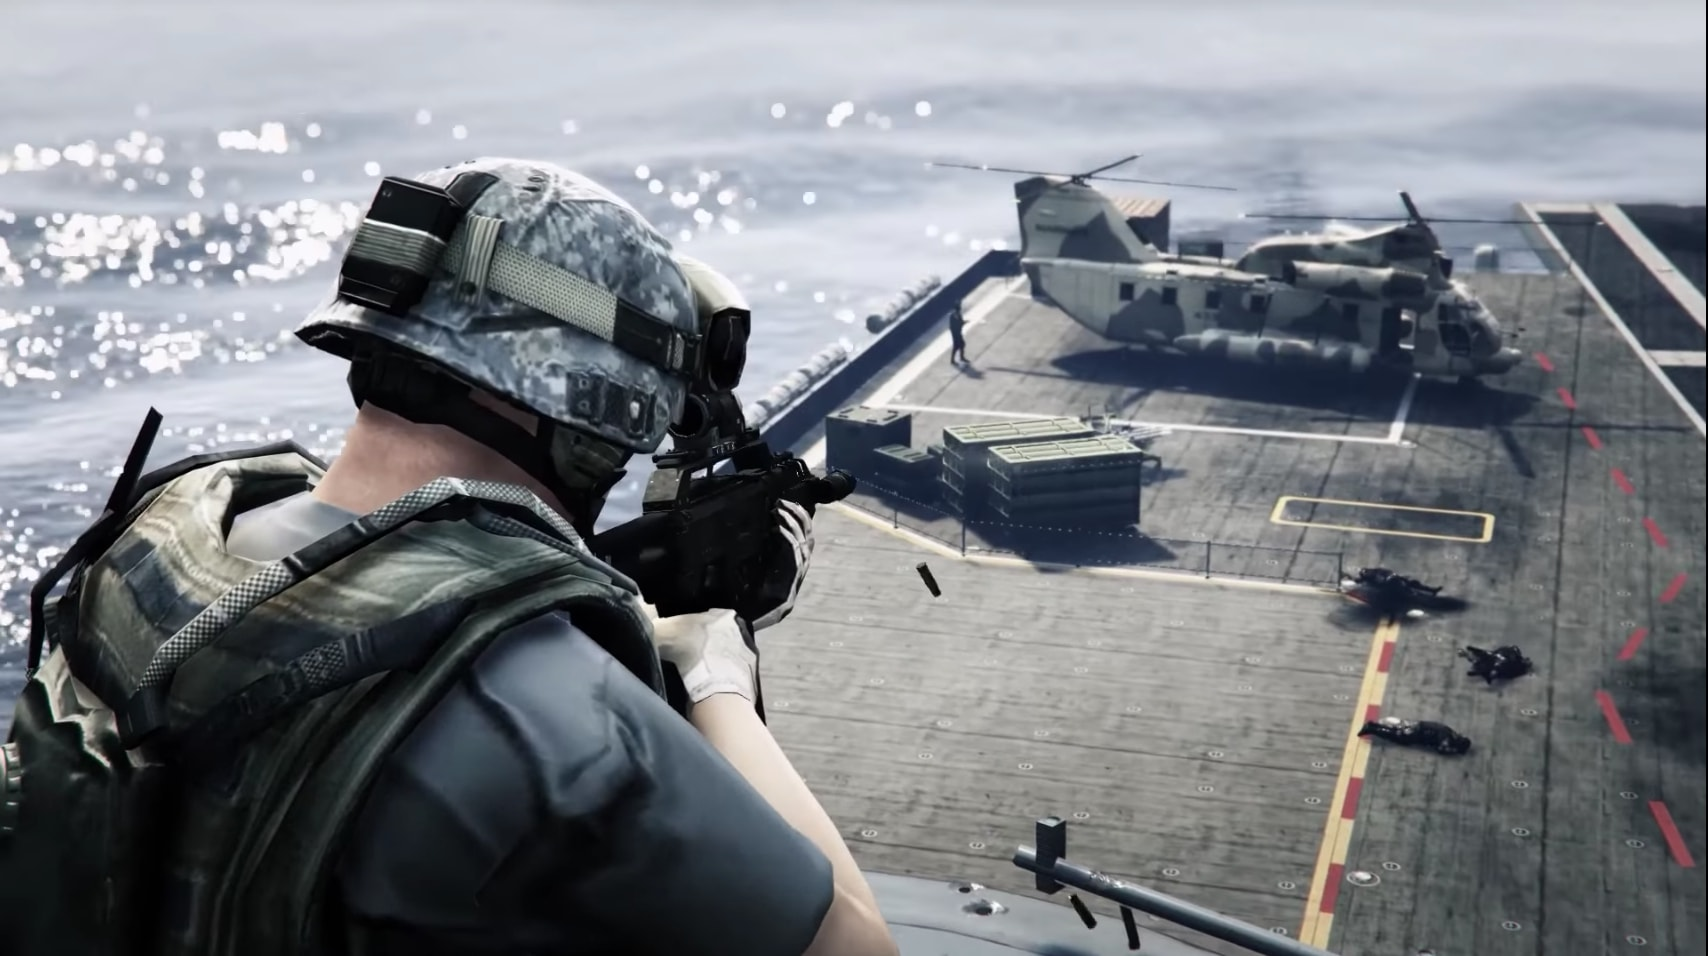 GTA 5 Warfare mod adds 20v20 military-themed showdowns | PC Gamer